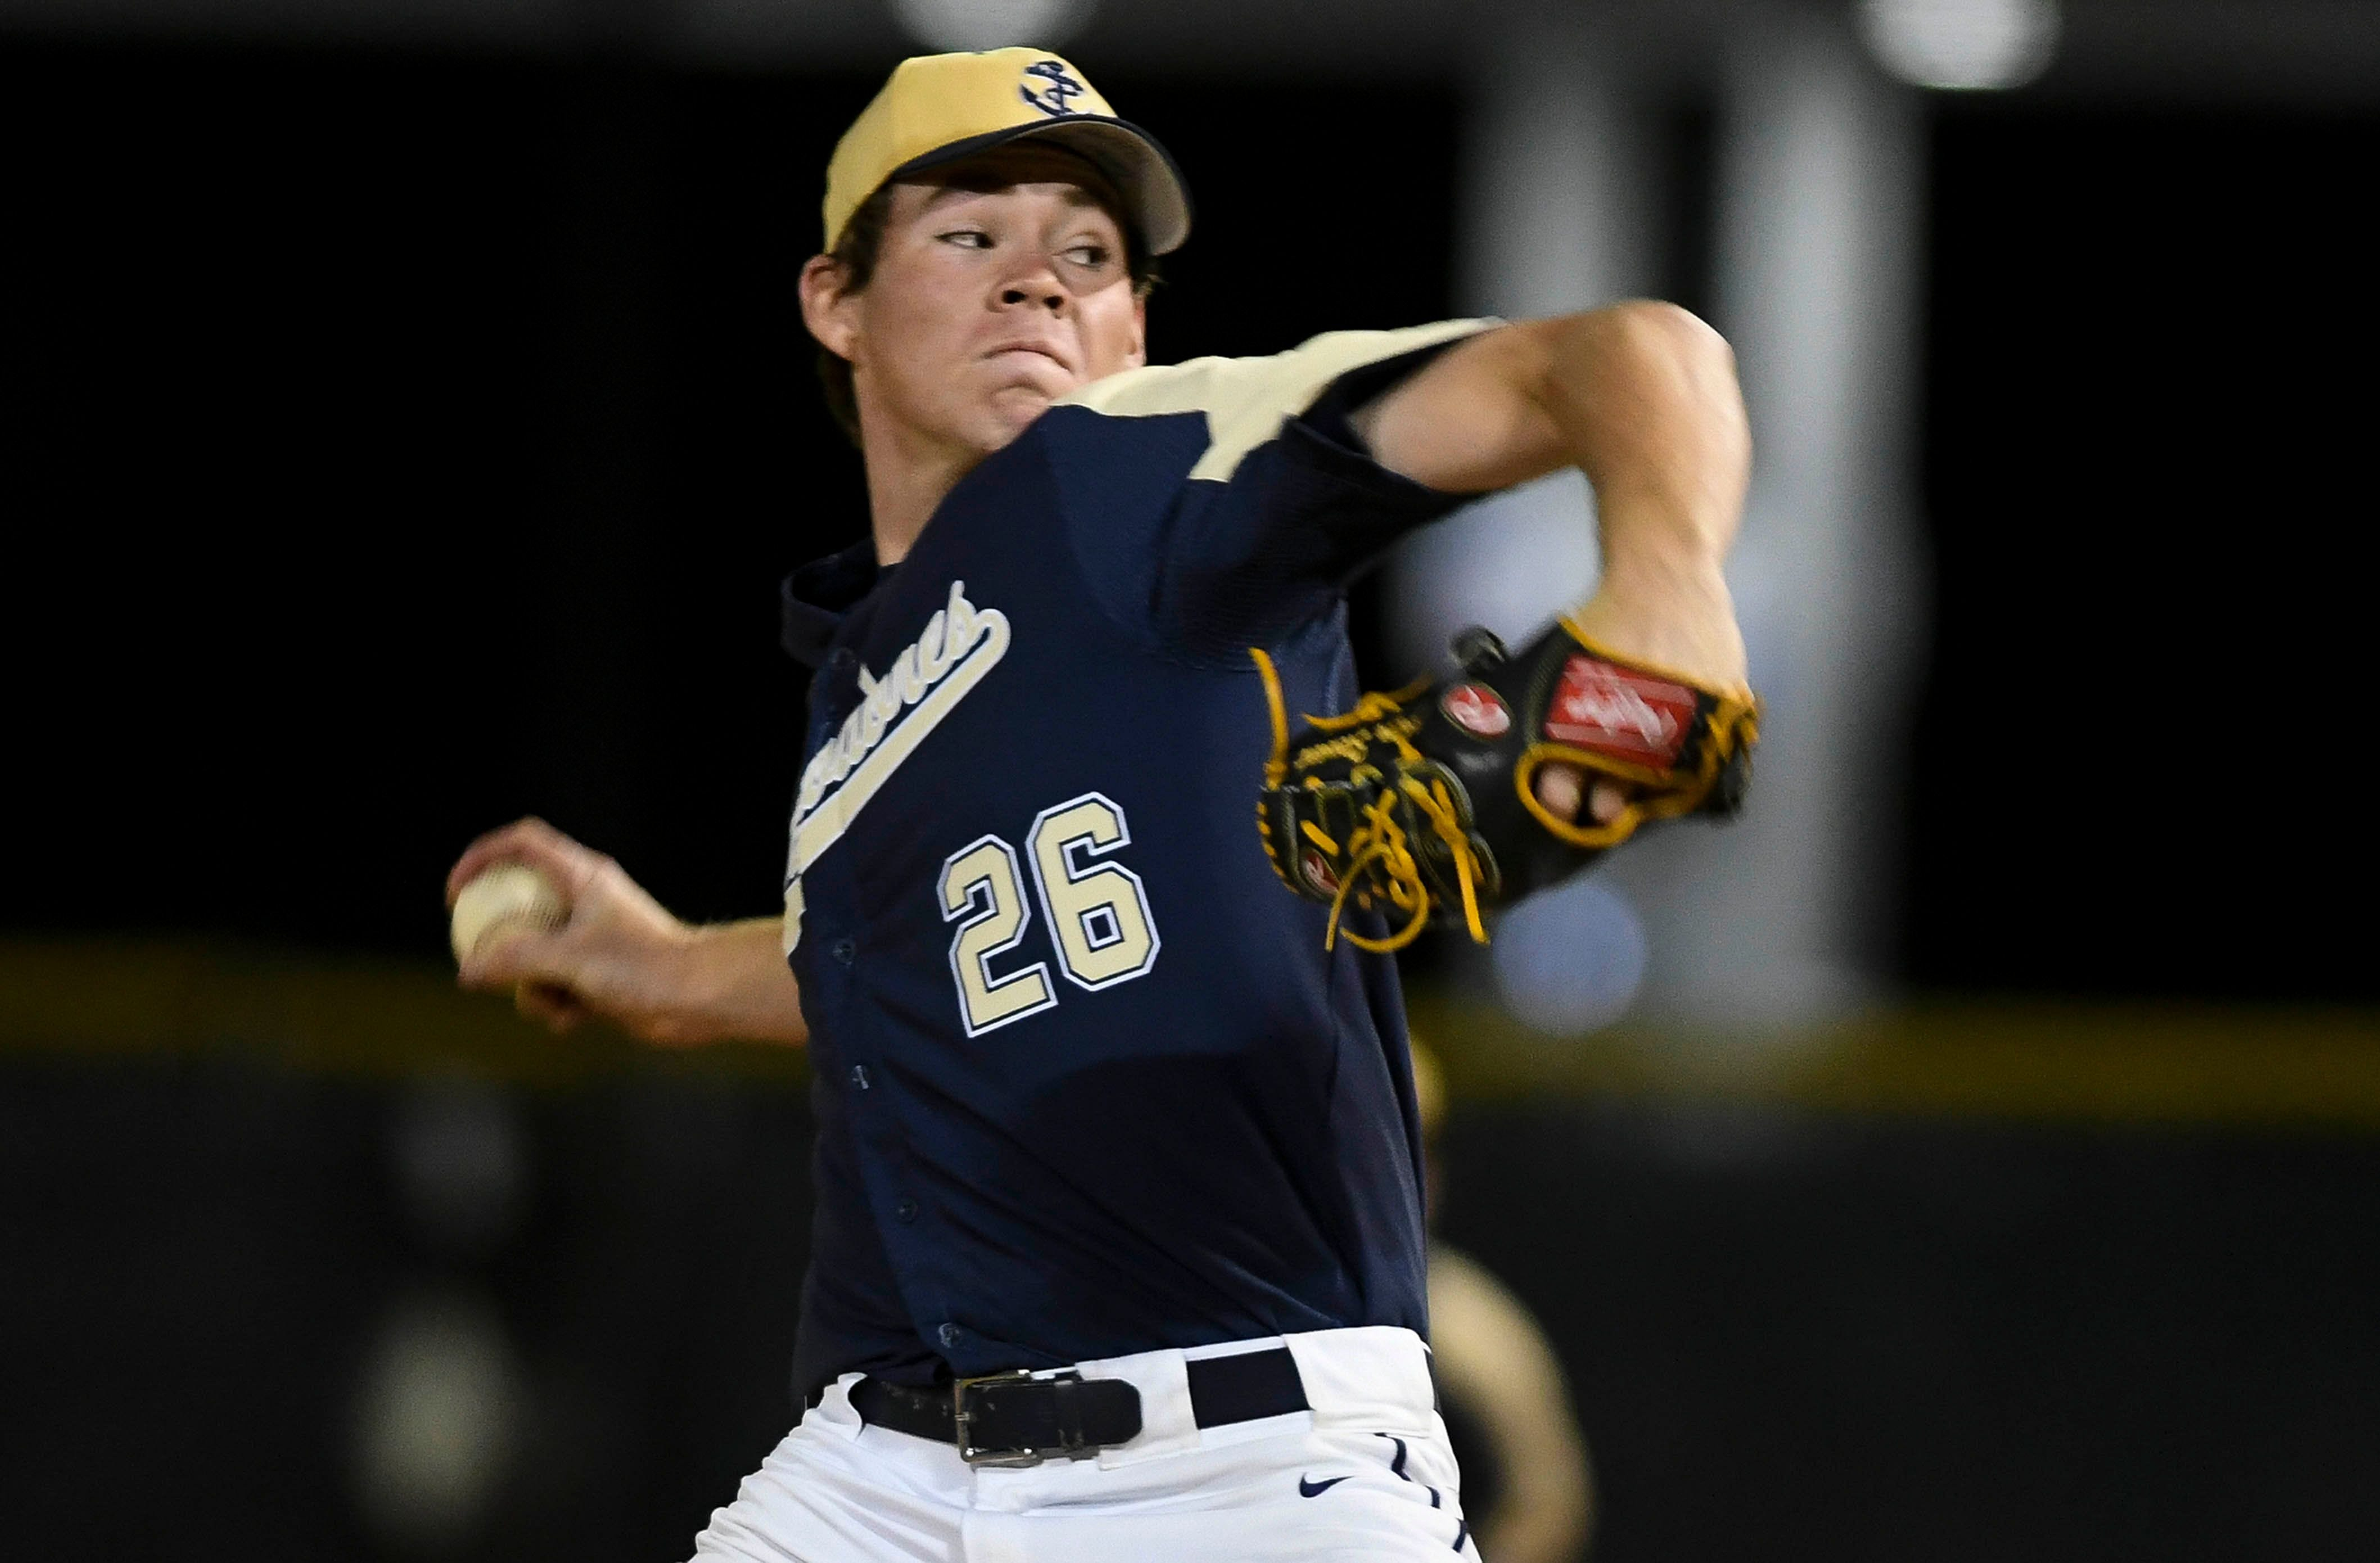 Eau Gallie pitcher Carter Stewart keeps focus on mound and tee